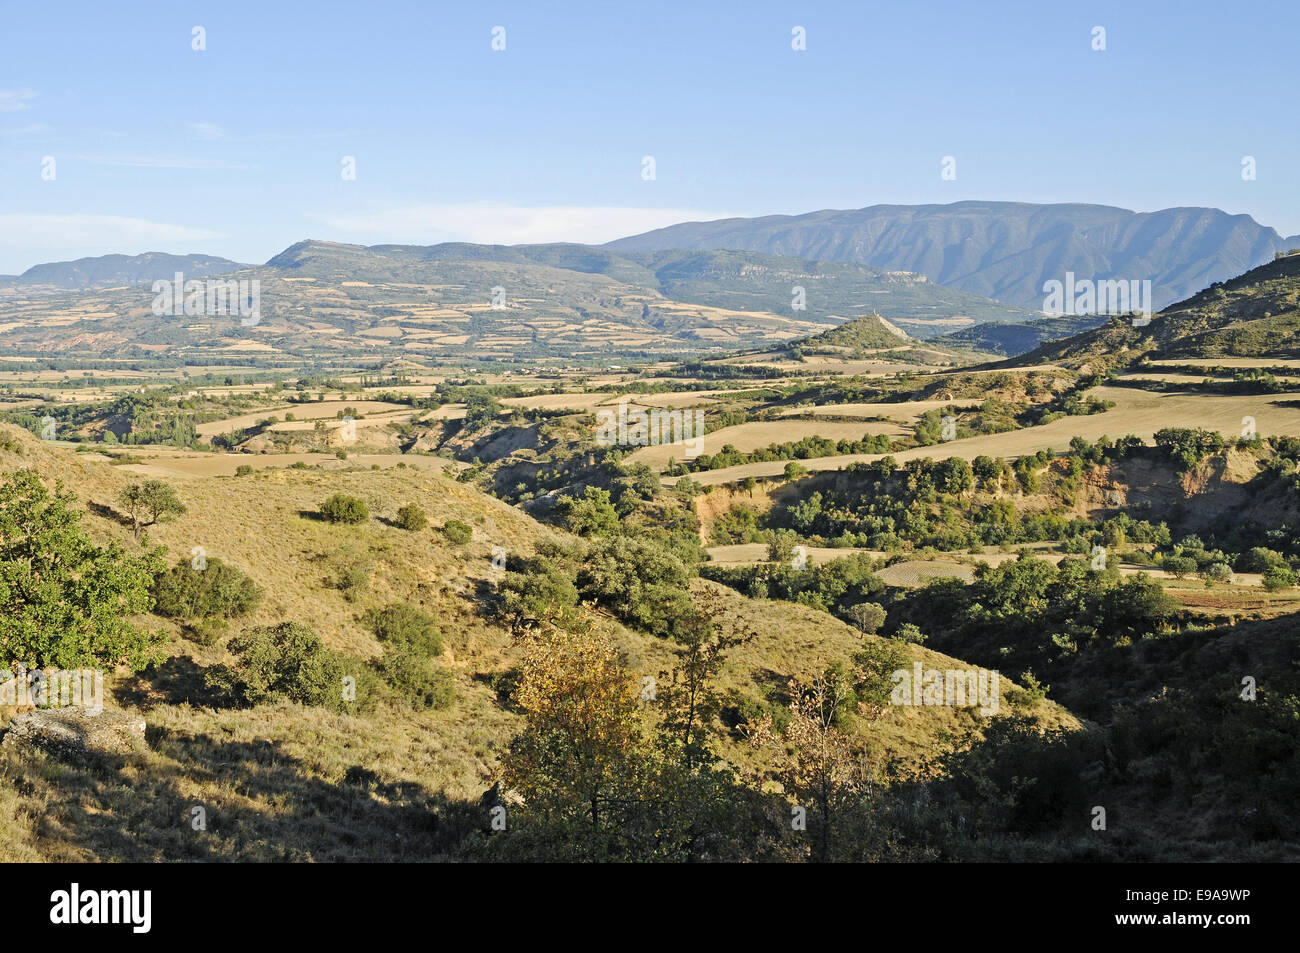 Landscape near Tremp, Lleida province, Spain Stock Photo